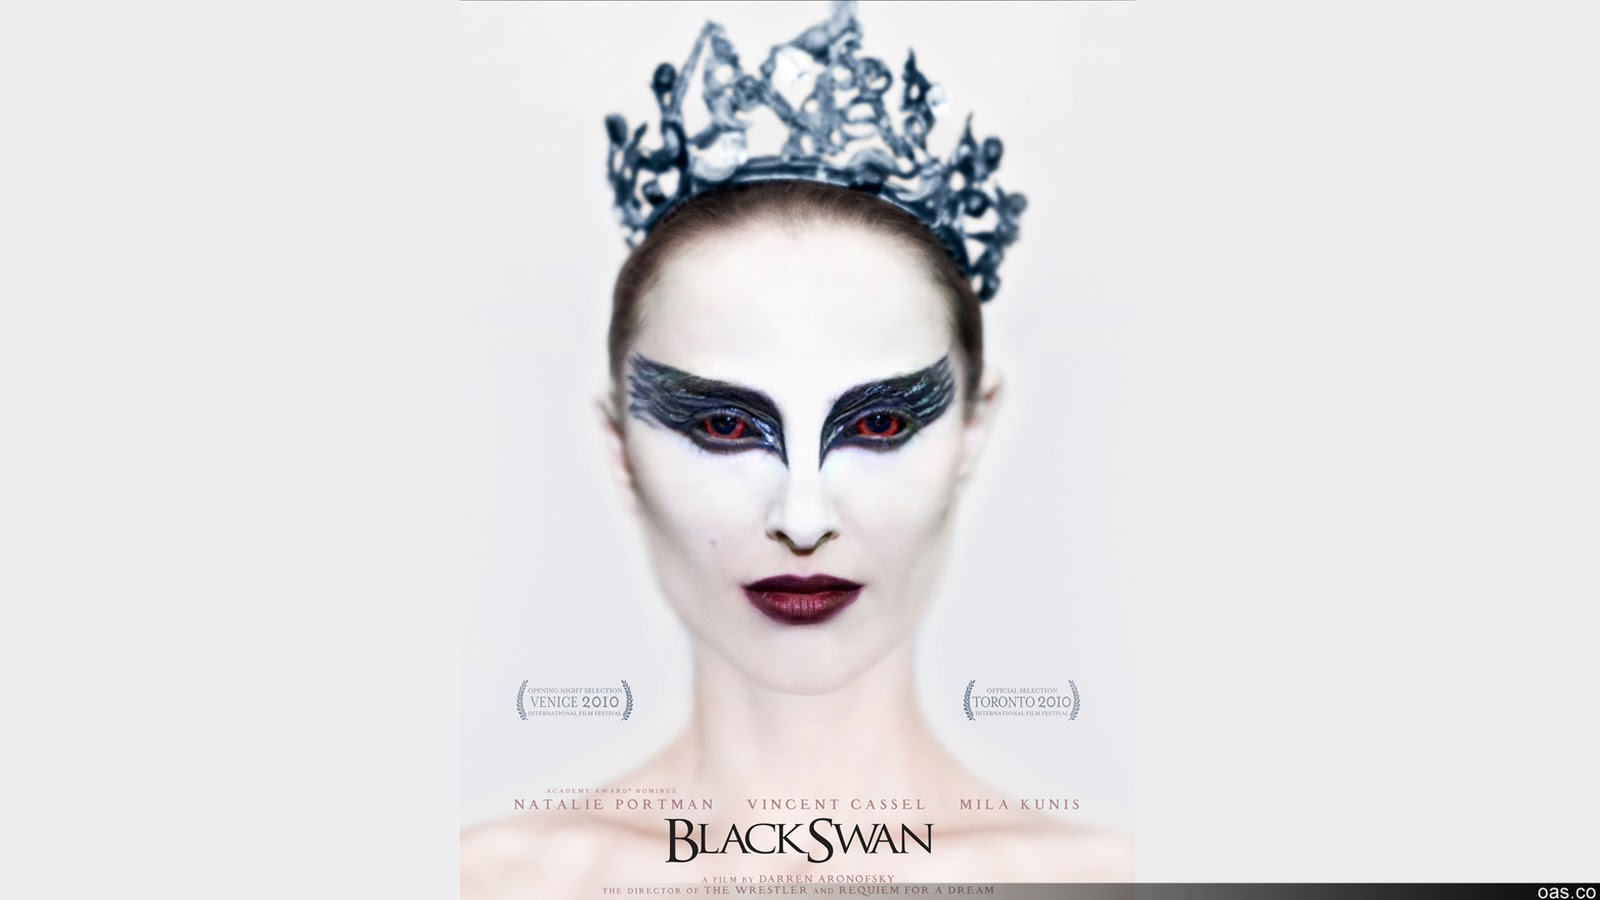 http://1.bp.blogspot.com/-51oiWs4qkSs/TV5cKafcfQI/AAAAAAAAAsM/ps7yqLNqvJg/s1600/black_swan_wallpapers_oas_a.jpg